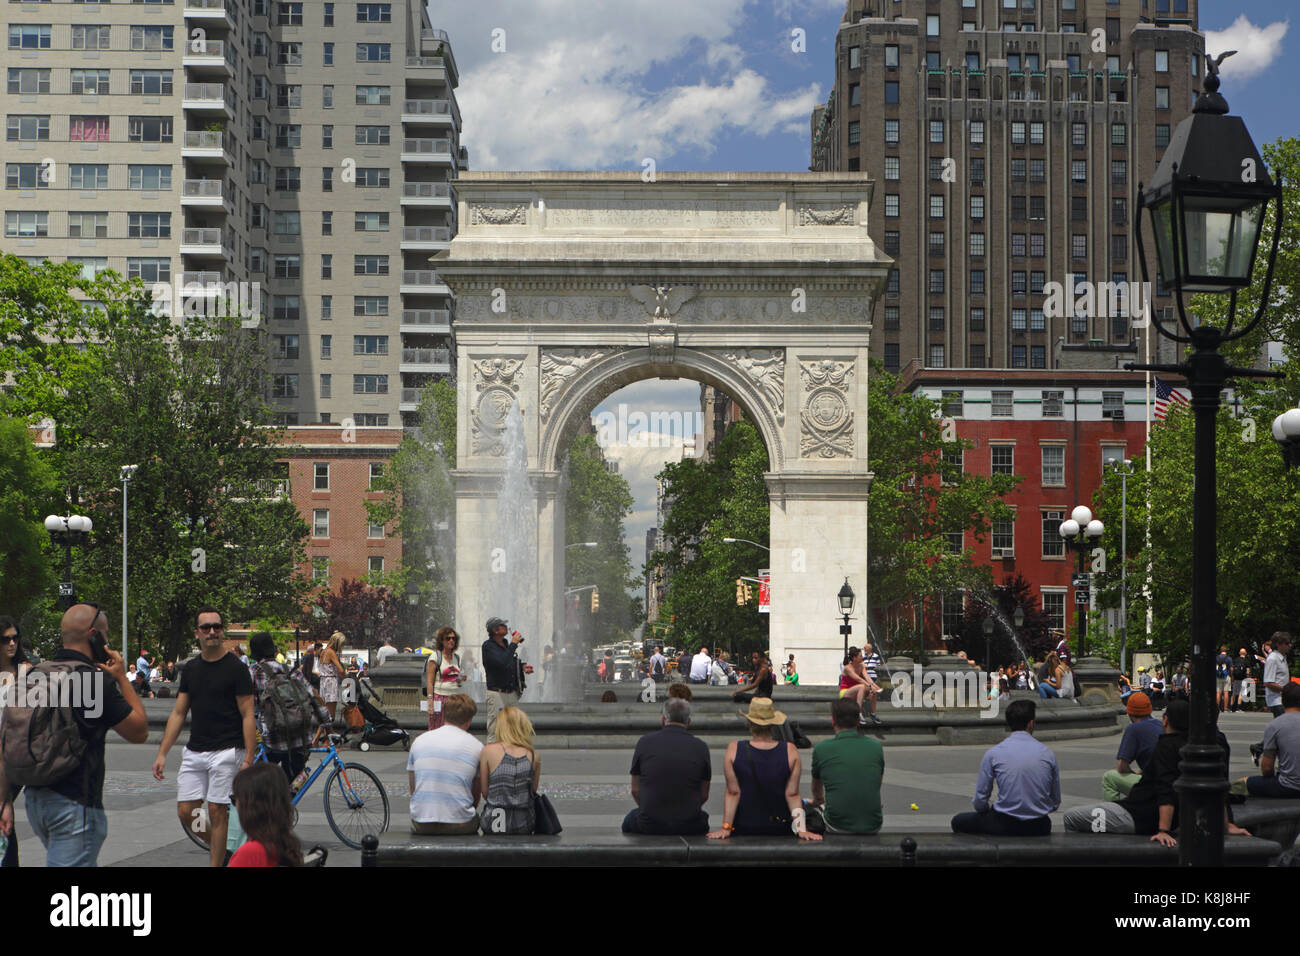 New York, NY, USA - June 1, 2017: Tourists and New York locals alike enjoy a sunny day in Washington Square Park - Stock Image